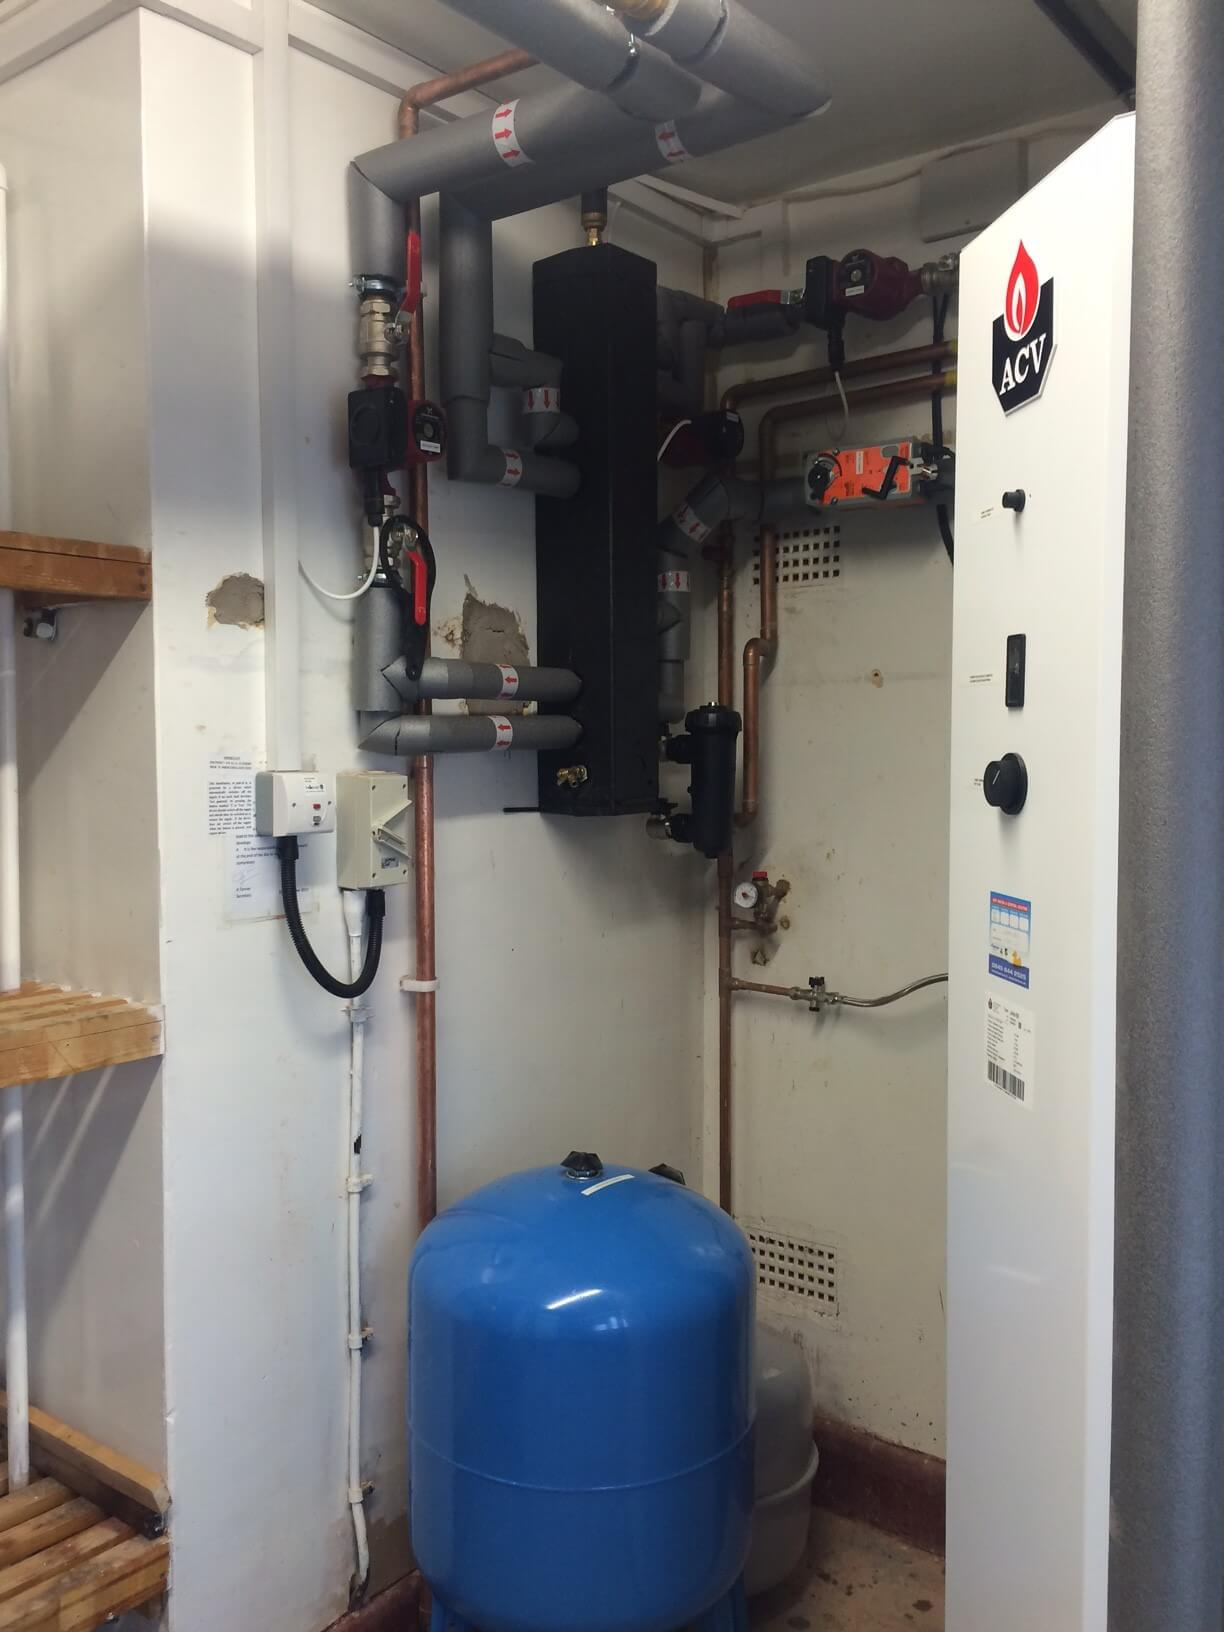 The ACV Heatmaster was attached to a header, giving three zones of heating control and the Jumbo hot water unit